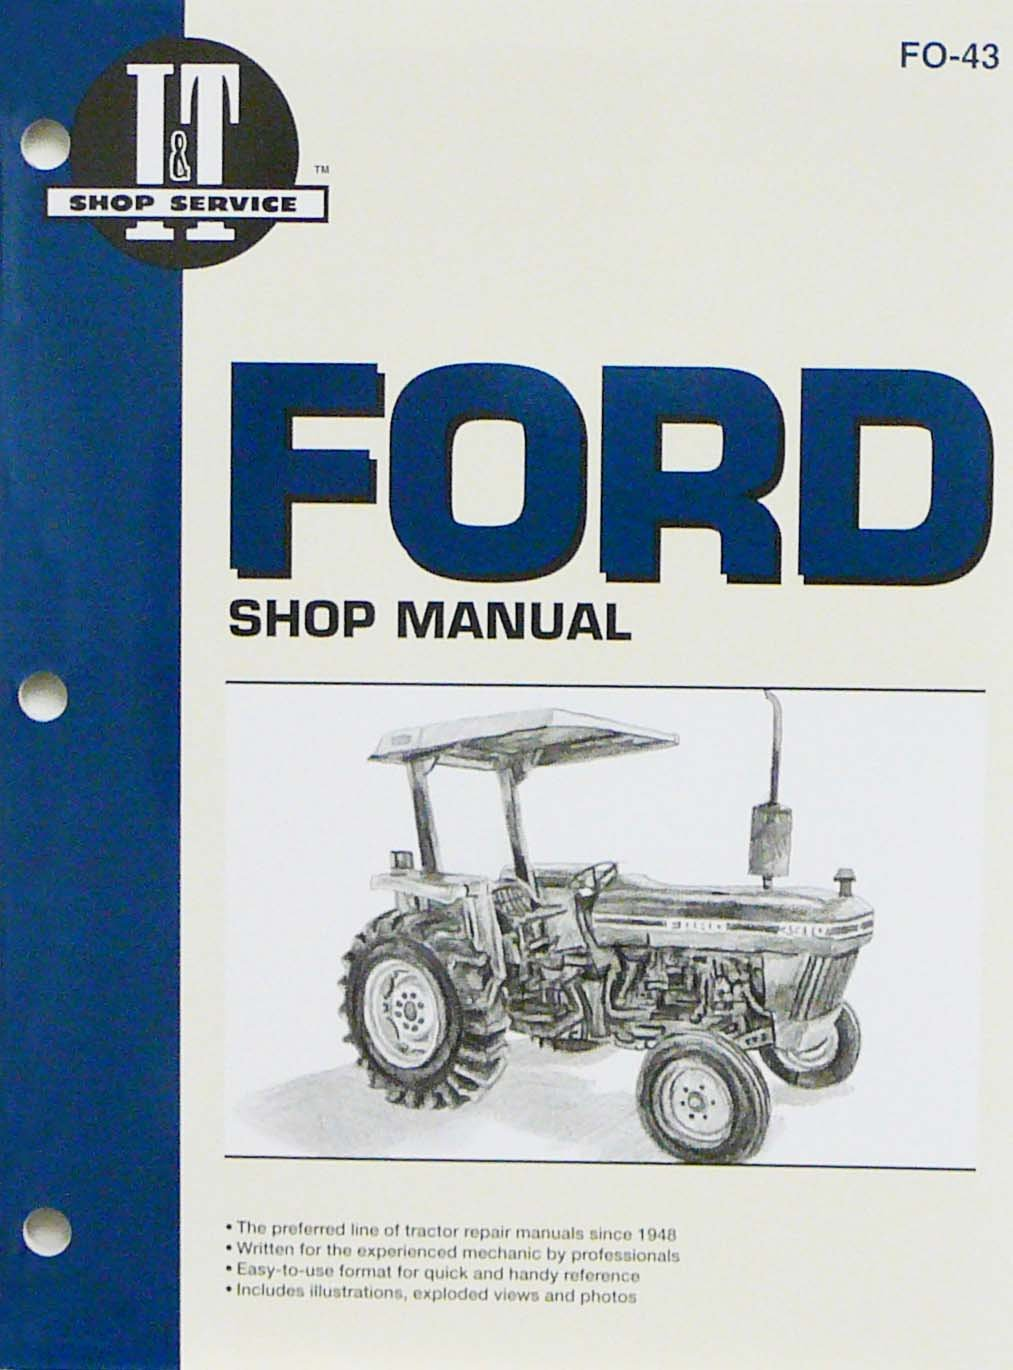 Sparex FO43 - I&T Ford Tractor Service/Repair Manual - 2810 2910 3910:  Agricultural Machinery Accessories: Amazon.com: Industrial & Scientific